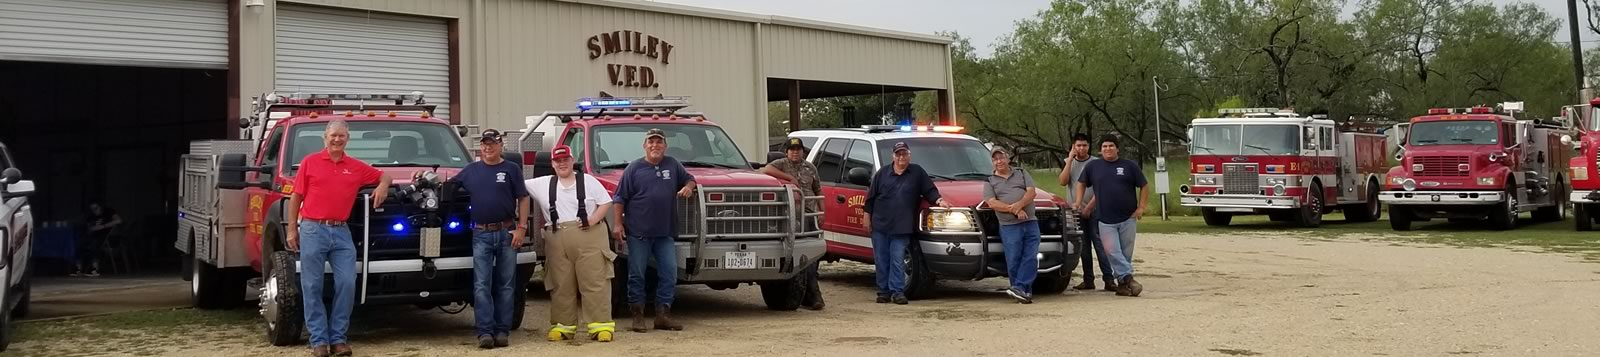 Smiley Texas volunteer fire department